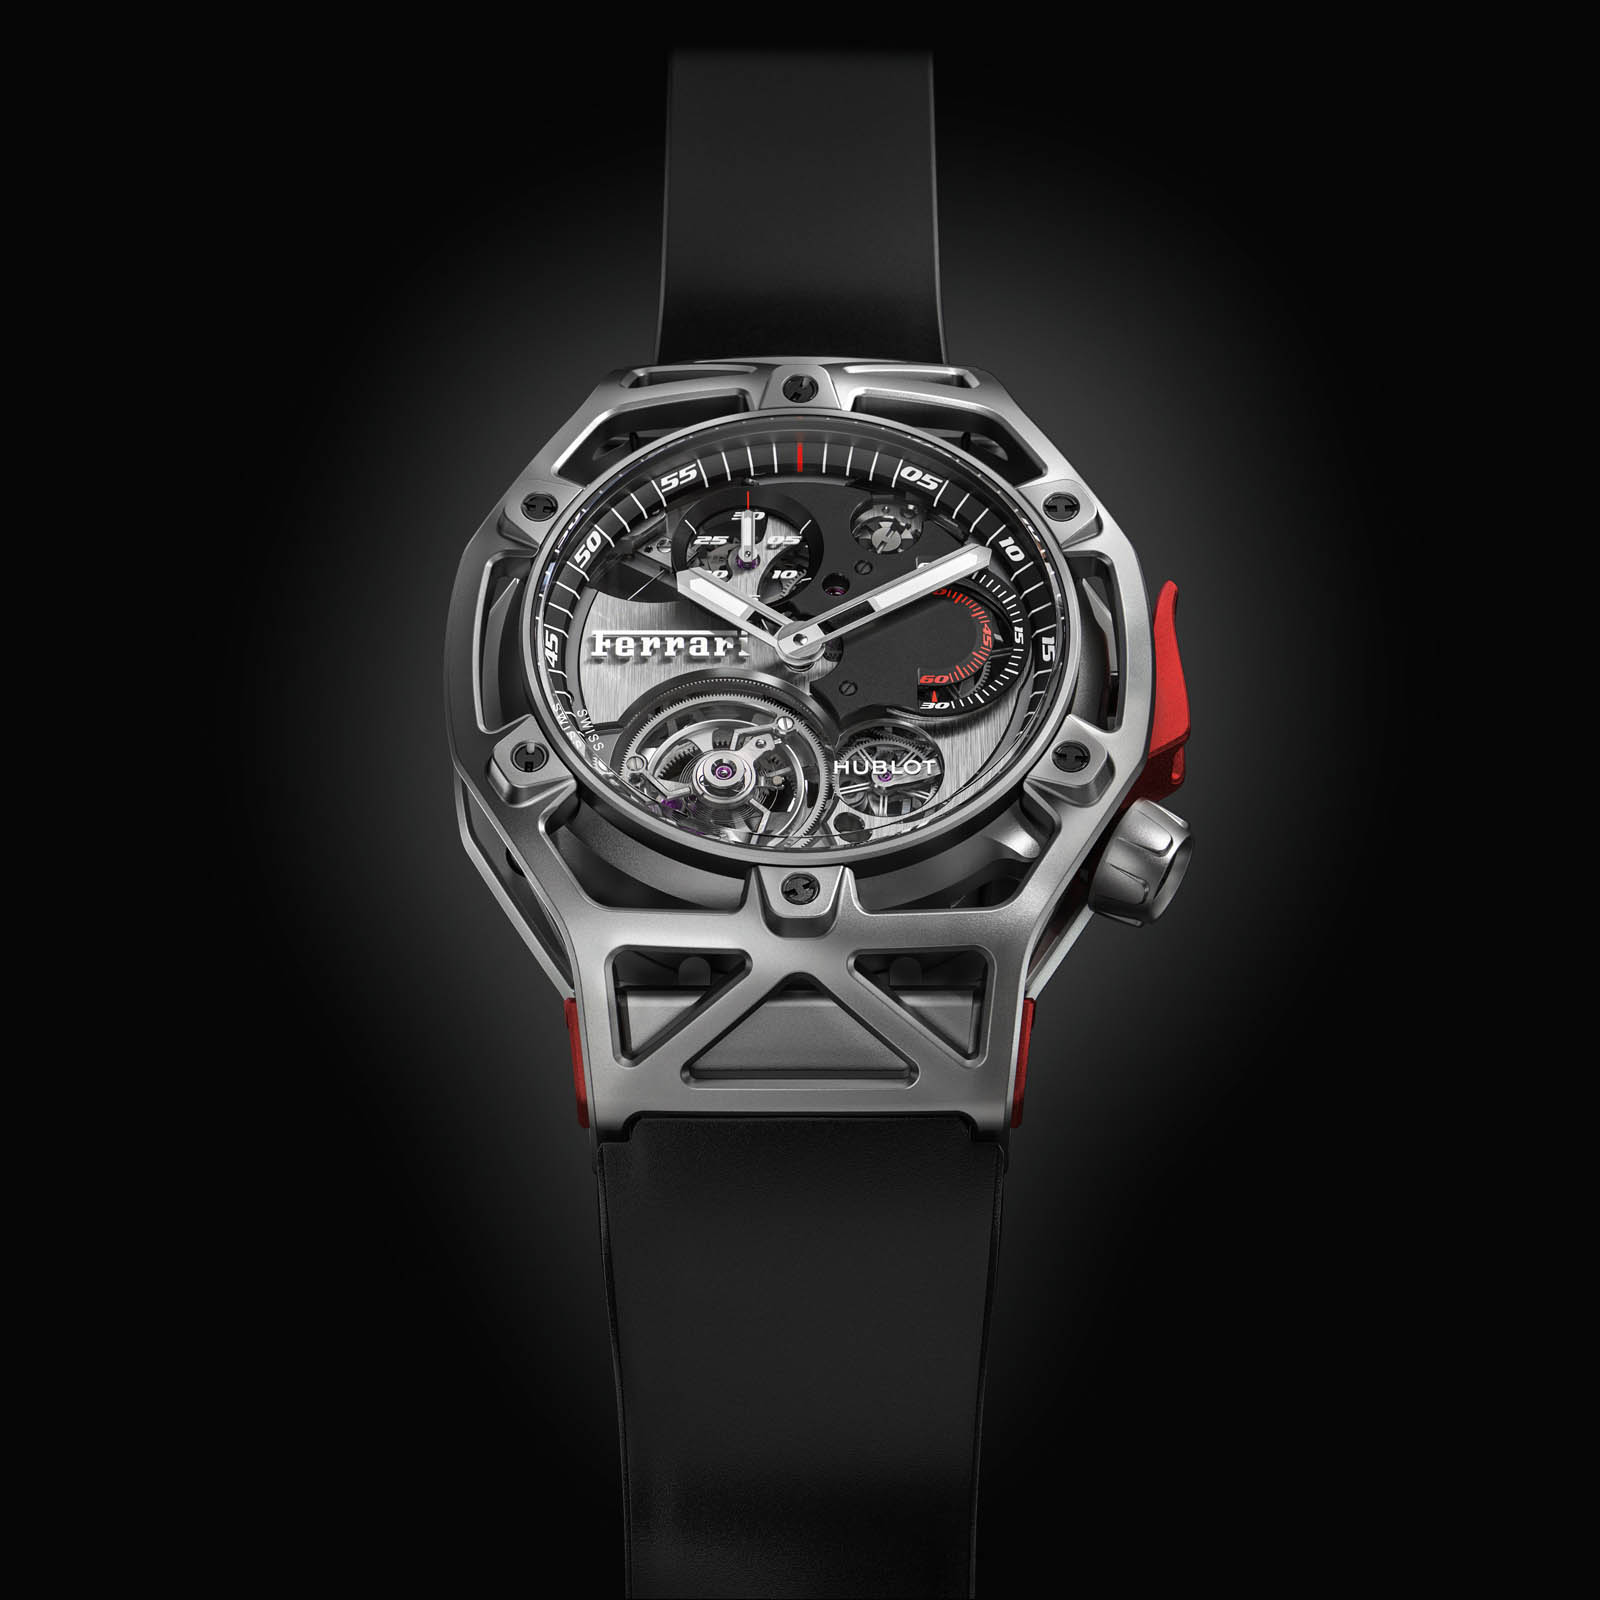 Hublot Techframe (16)